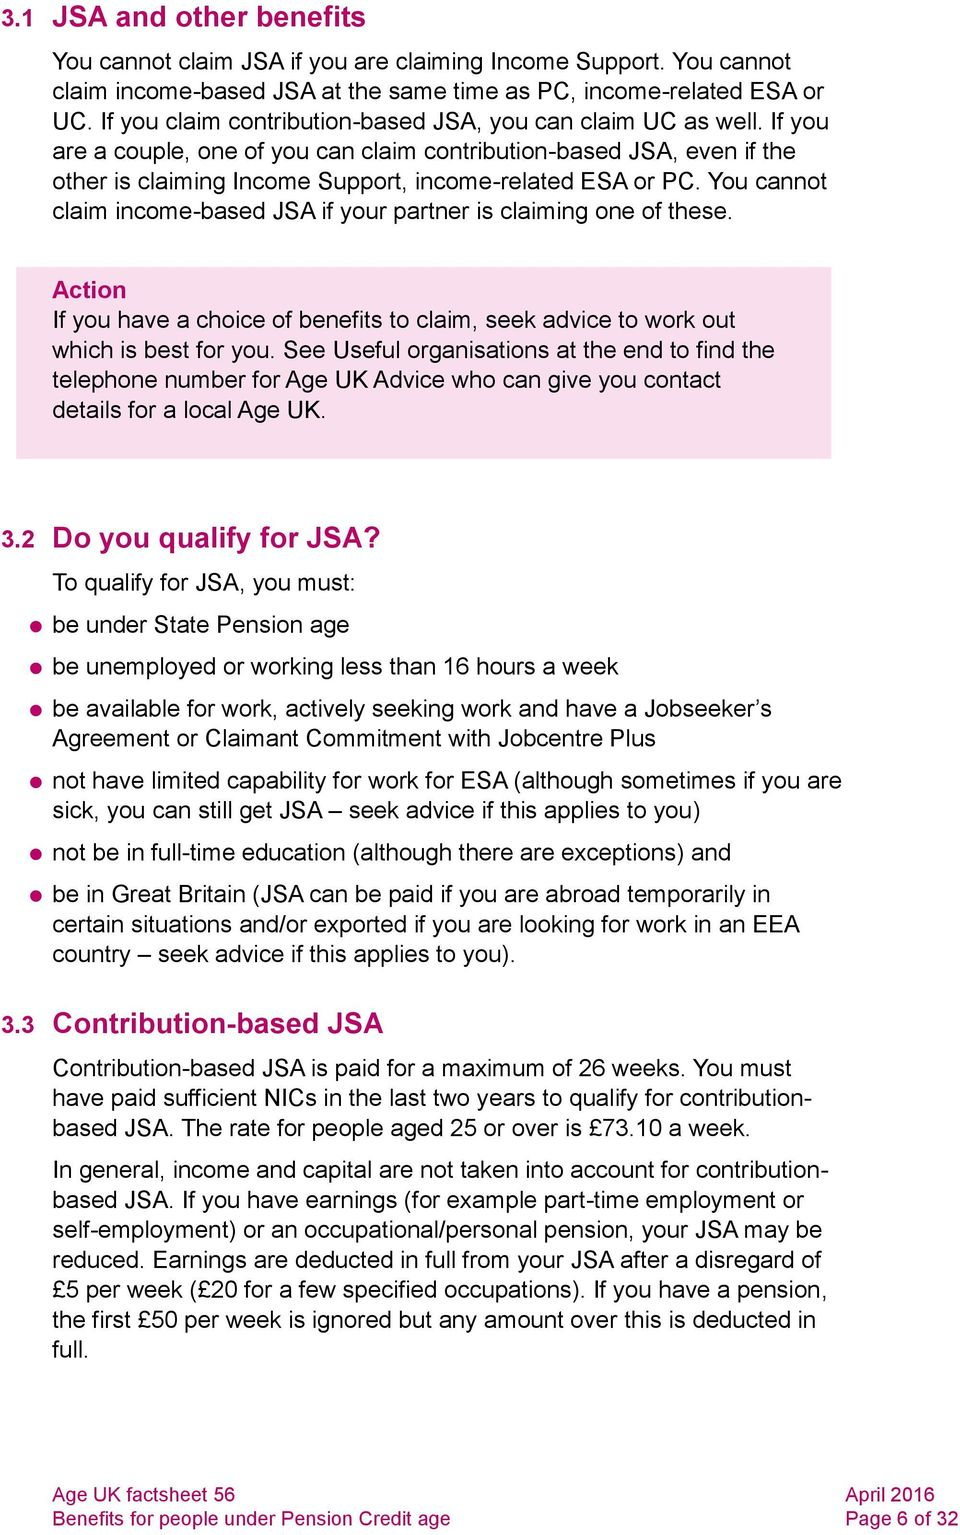 You cannot claim income-based JSA if your partner is claiming one of these. Action If you have a choice of benefits to claim, seek advice to work out which is best for you.